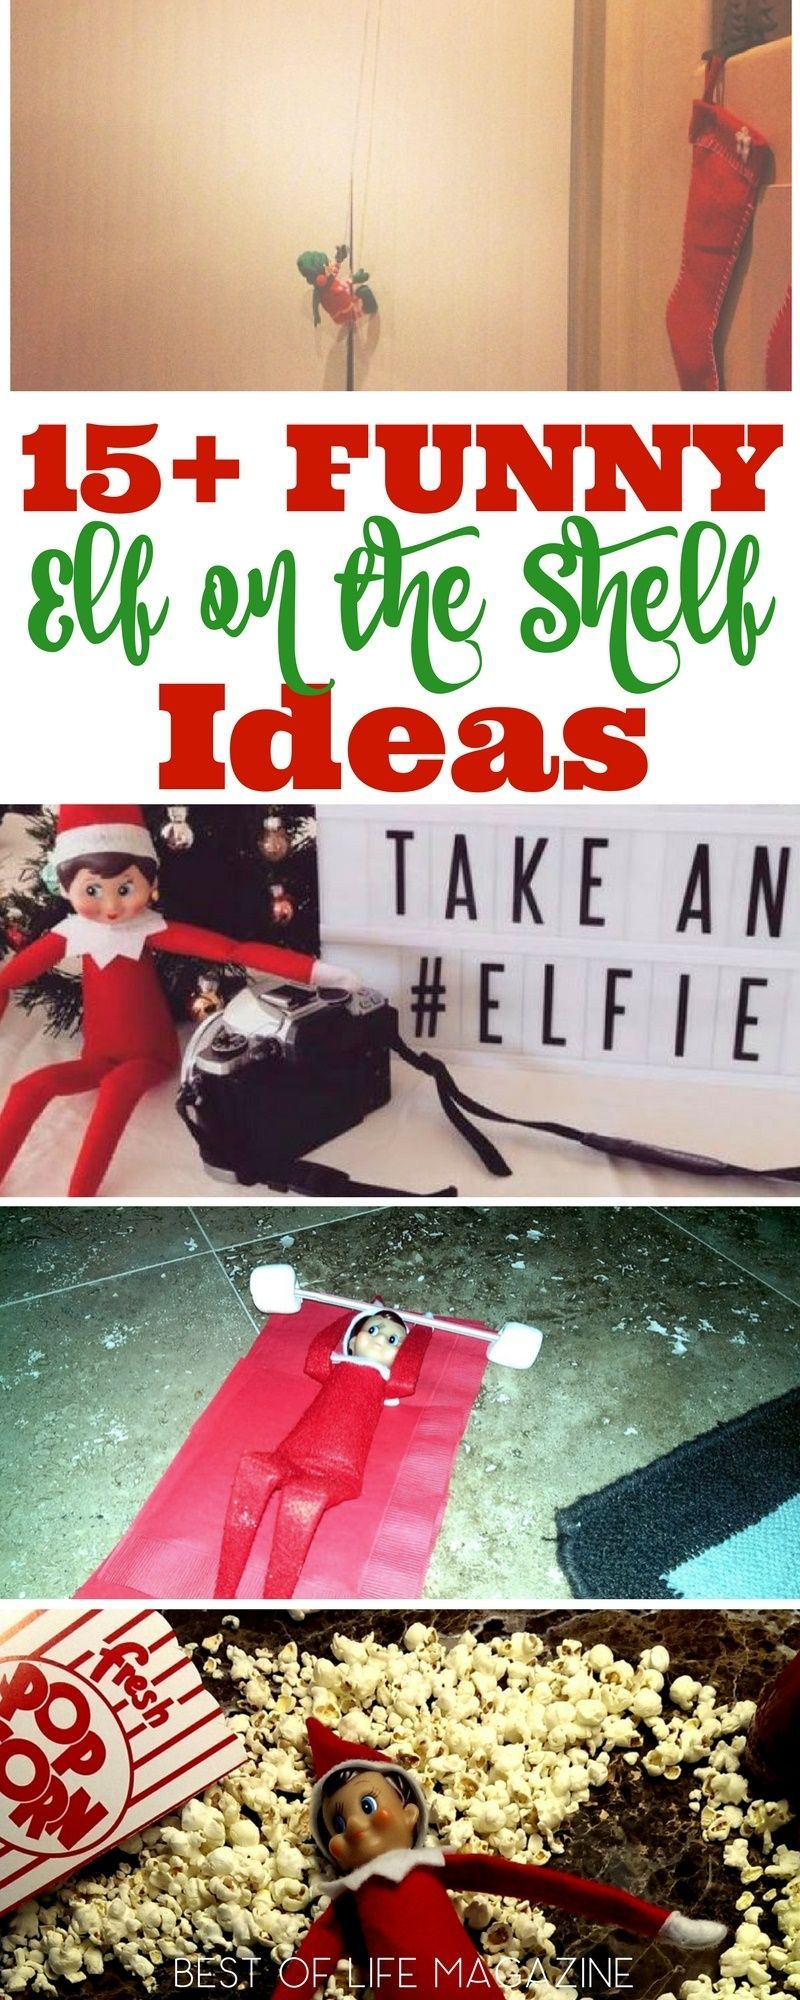 #Add #Elf #Funny #Ideas #Shelf Make sure to add some of these funny Elf on a Shelf ideas into your Elf on the Shelf fun this holiday season! Things to do with Elf on a Shelf   Elf on a Shelf Hilarious   Elf on the Shelf Funny for Kids   Elf on a Shelf Fun Things #elfontheshelfideasfunnyhilarious